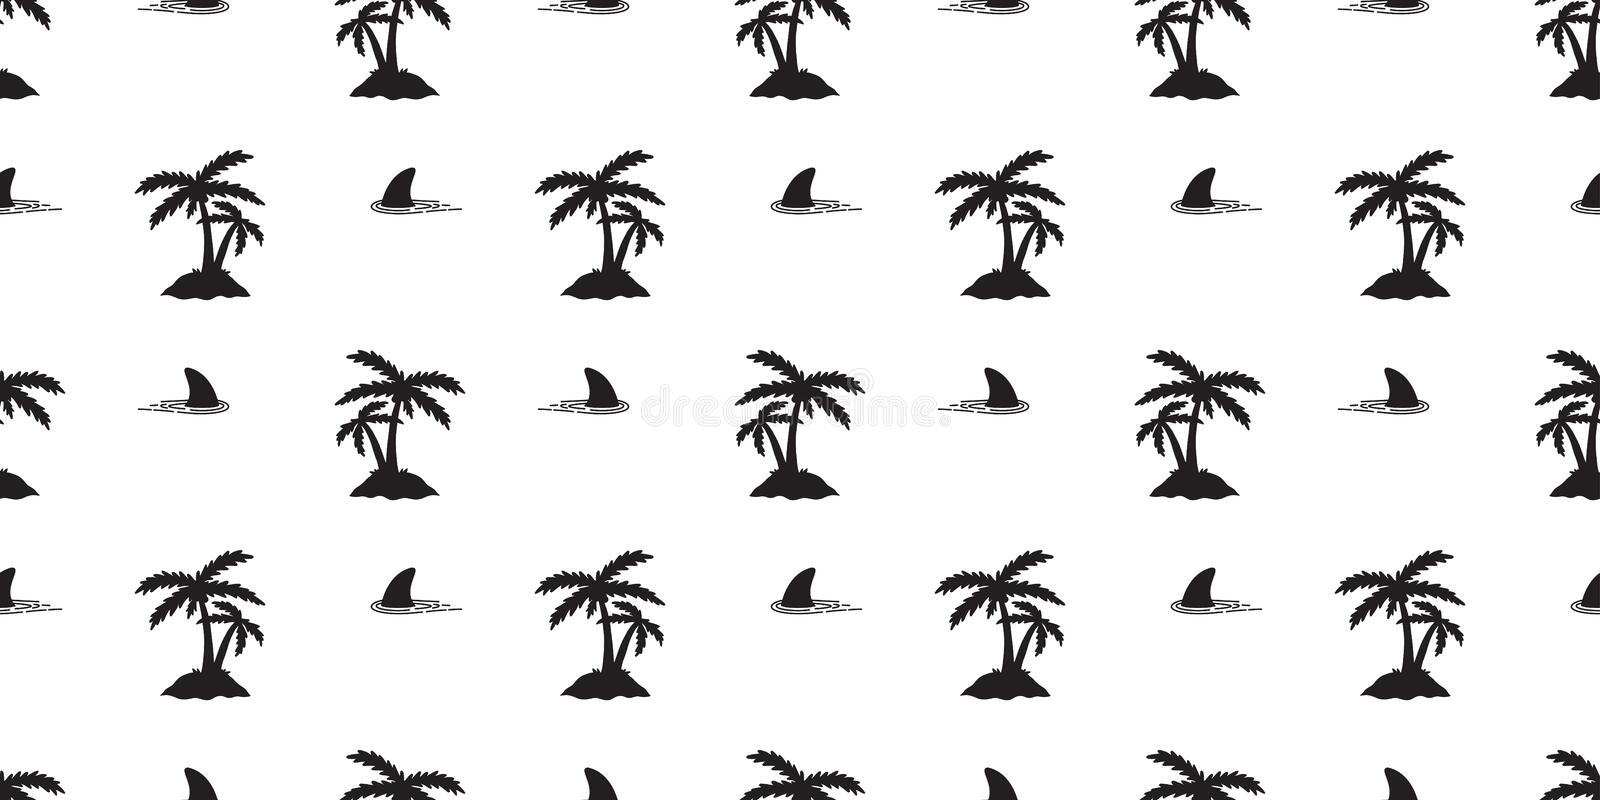 Shark fin seamless pattern dolphin coconut tree isolated whale ocean wave sea island wallpaper background stock illustration